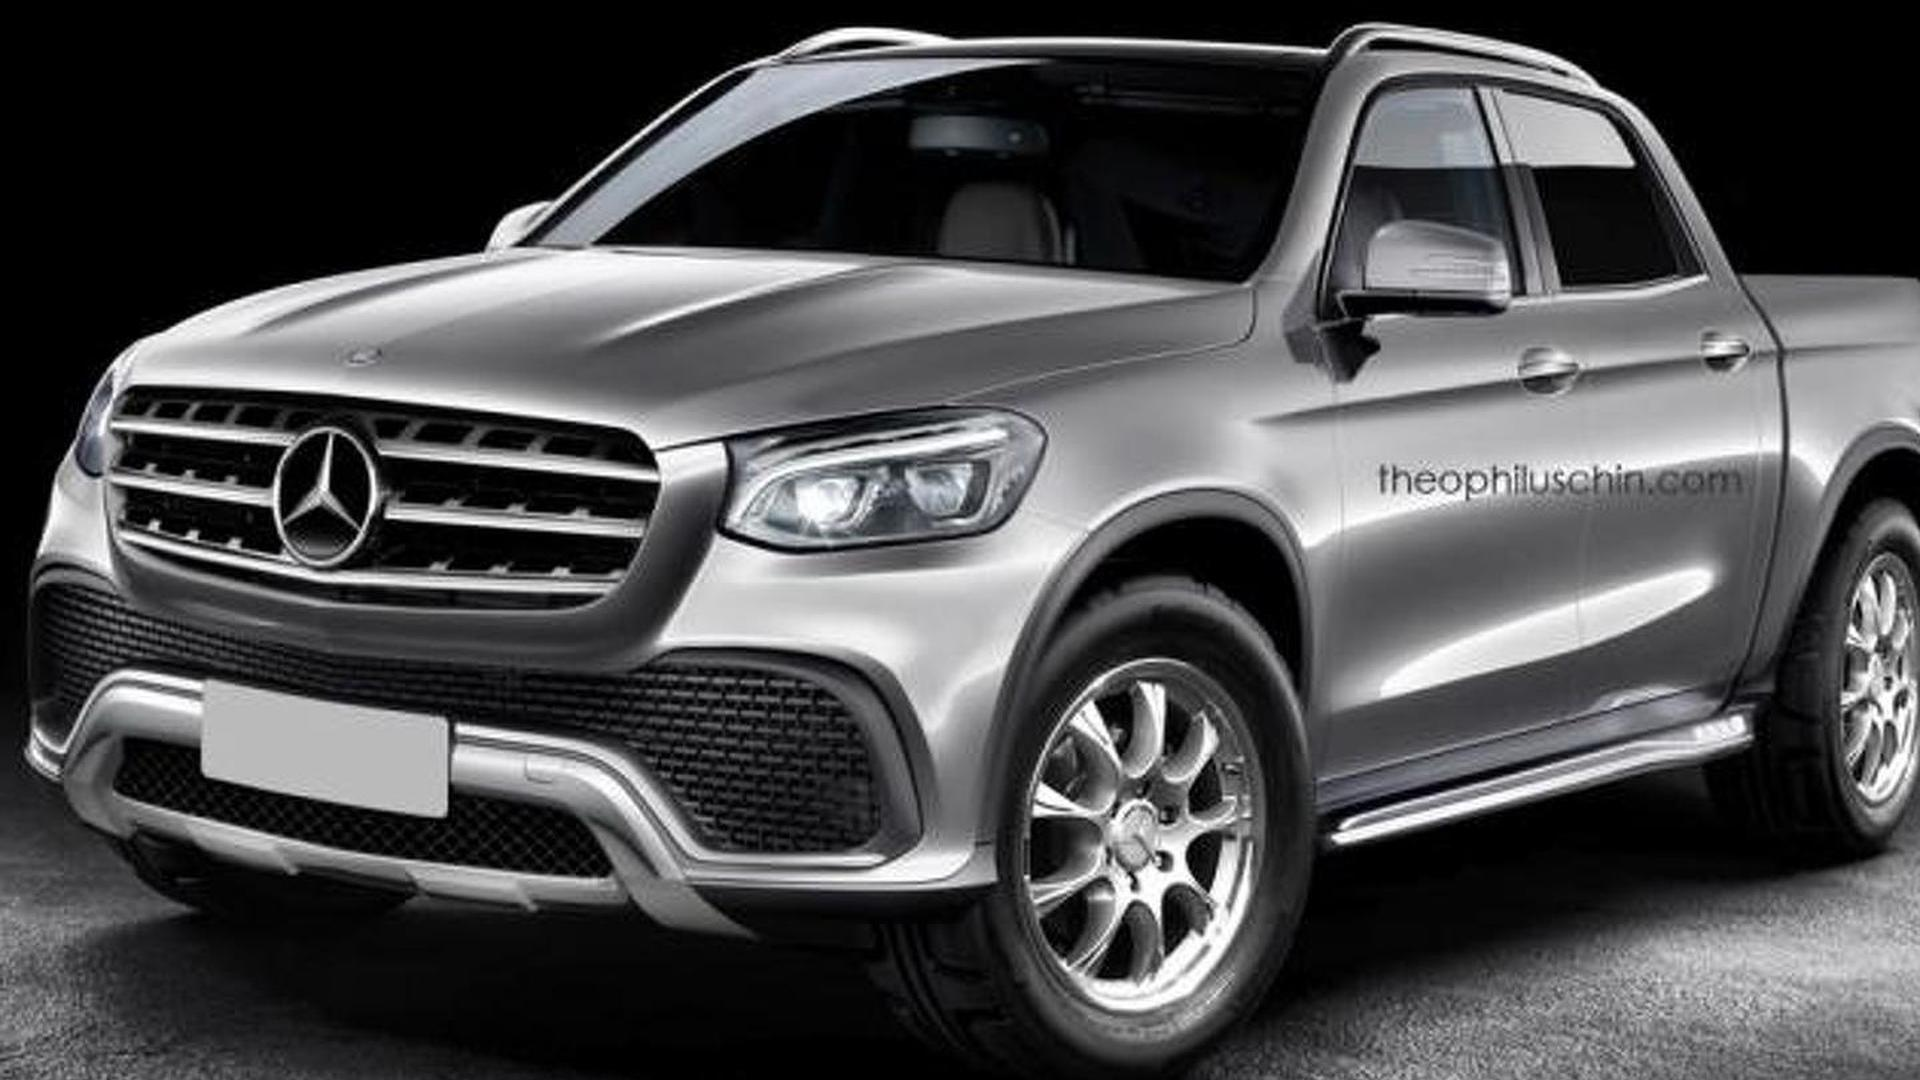 Mercedes-Benz says their pickup truck will be truly premium